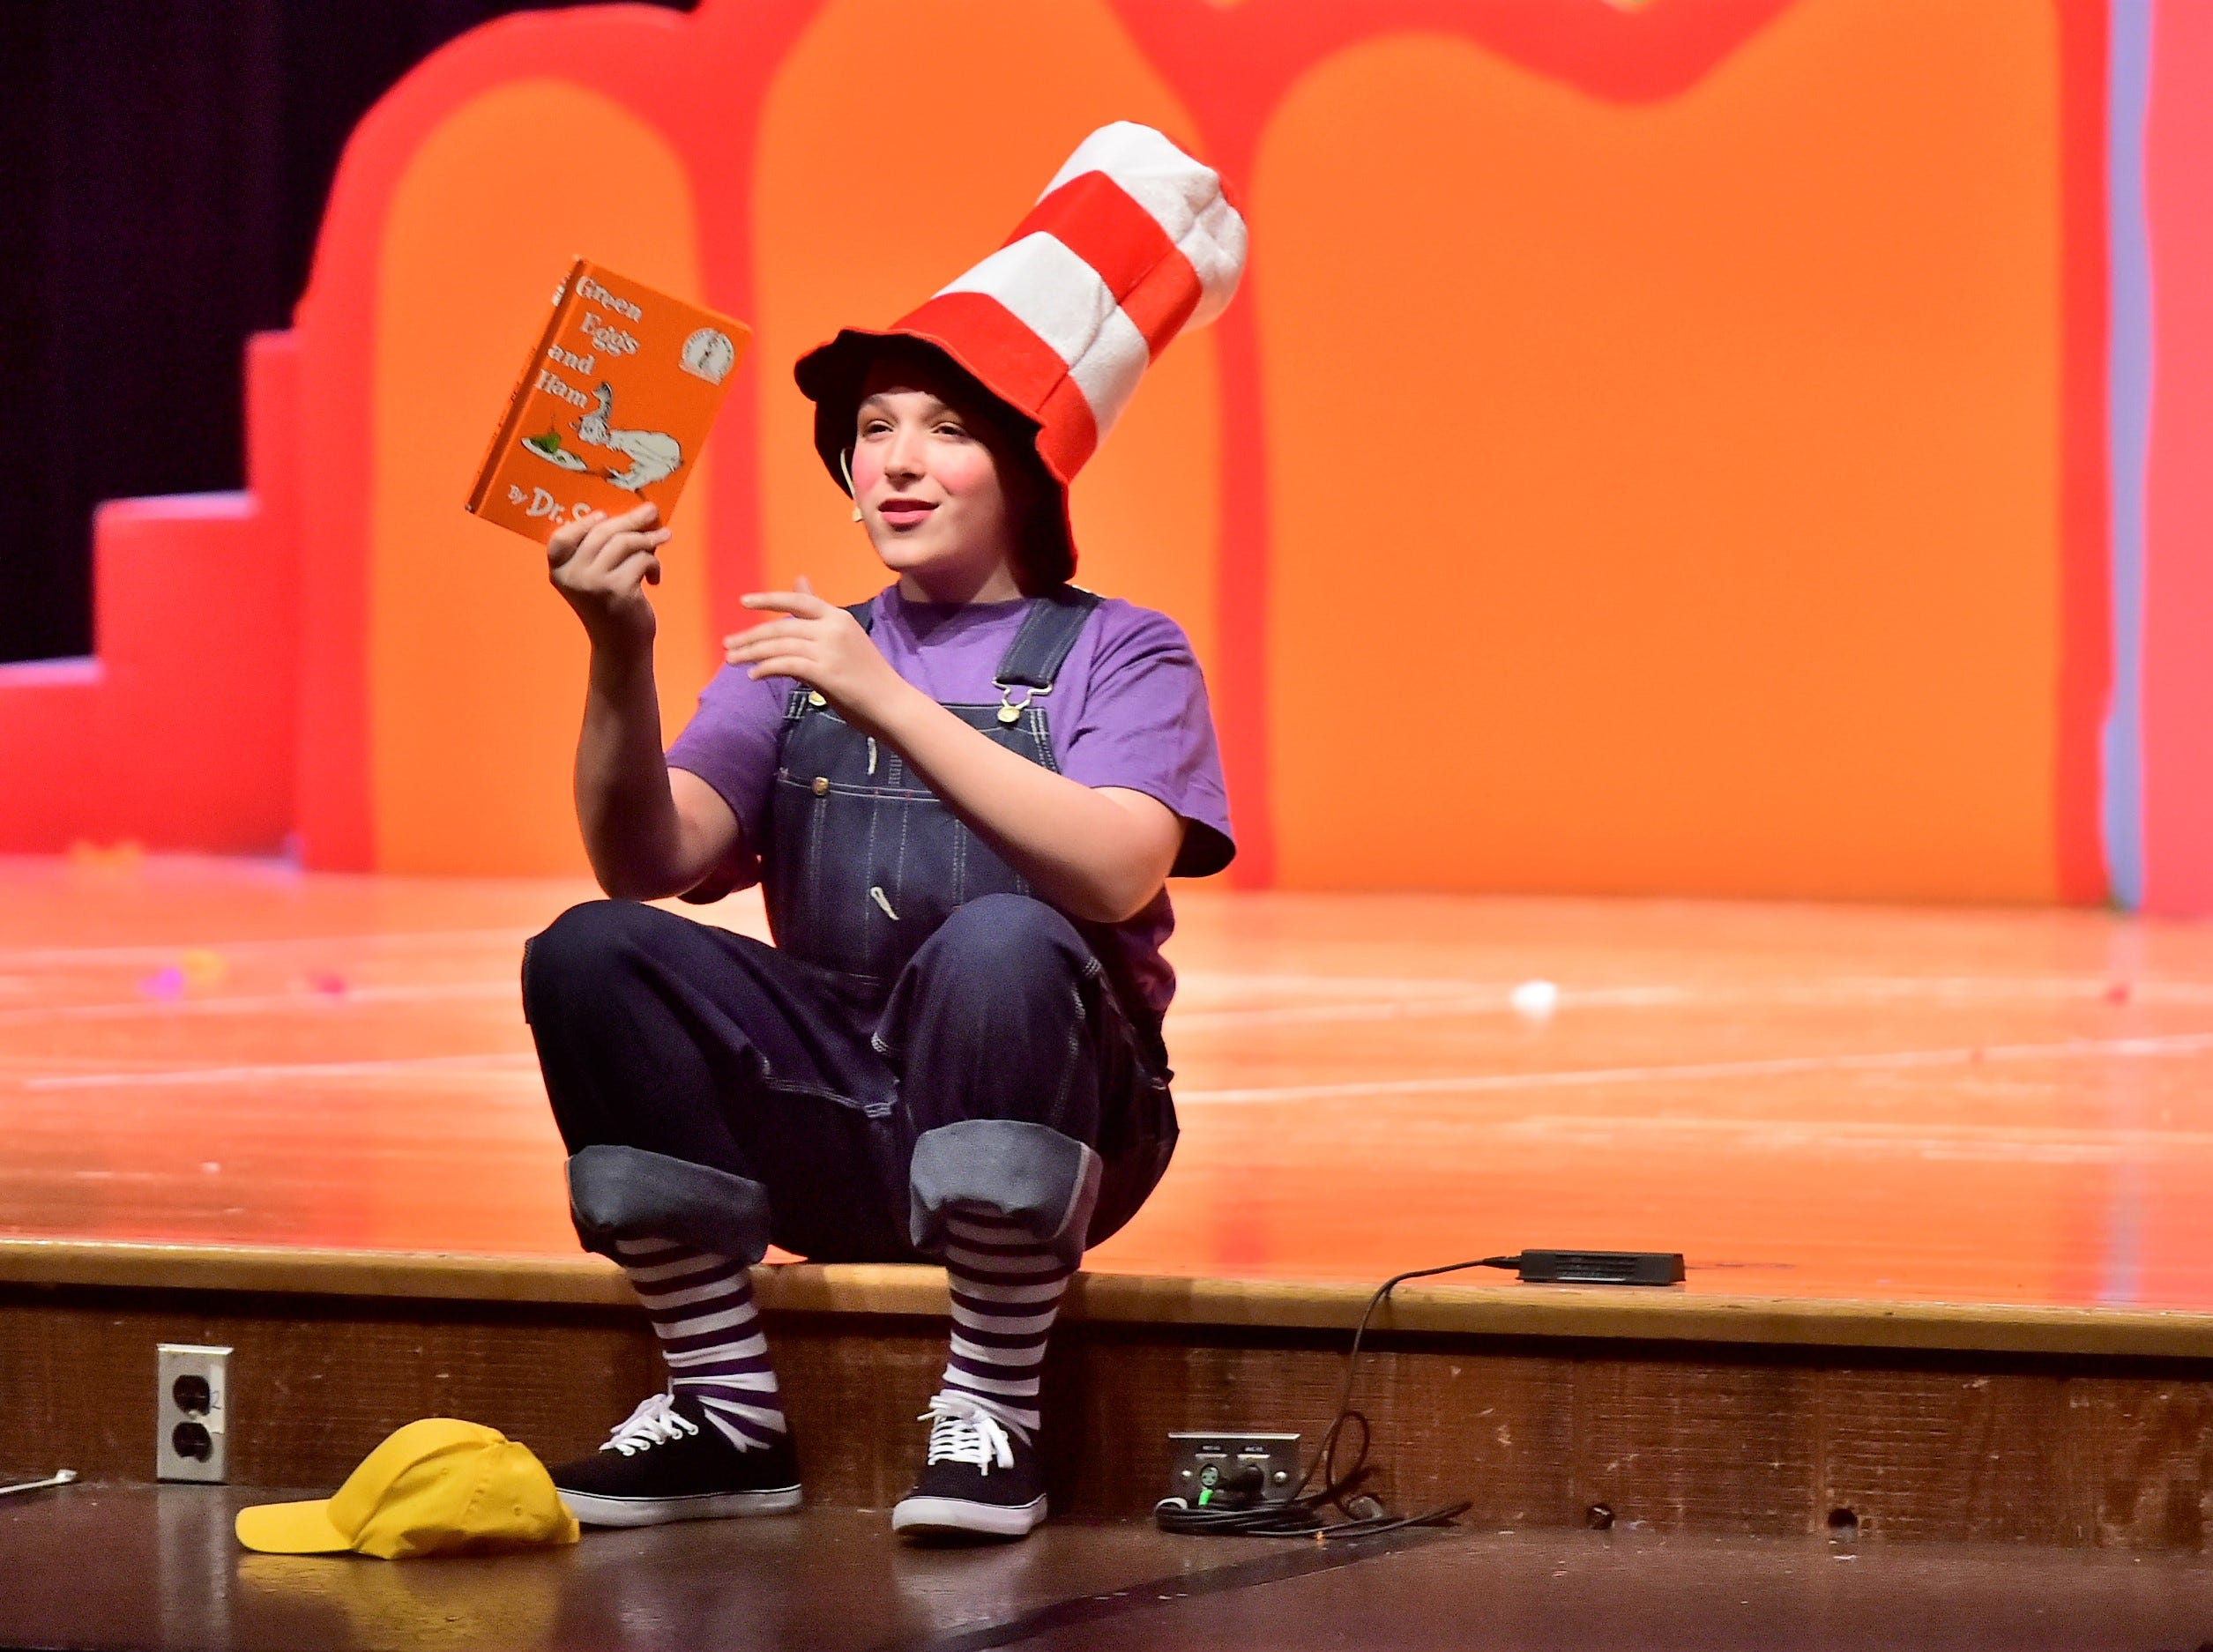 "Bradley Stahl, playing JoJo, holds the Dr. Seuss book, ""Green Eggs and Ham"" during a dress rehearsal Tuesday, Feb. 19, 2019, for ""Seussical Jr."" Chambersburg Area Middle School South Drama Club will present the production at 7 p.m. Friday and Saturday, Feb. 22 and 23, and 2 p.m. Saturday and Sunday, Feb. 23 and 24, in the CAMS South auditorium. For tickets, $8, go to www.showtix4u.com and look up CAMS South Seussical."